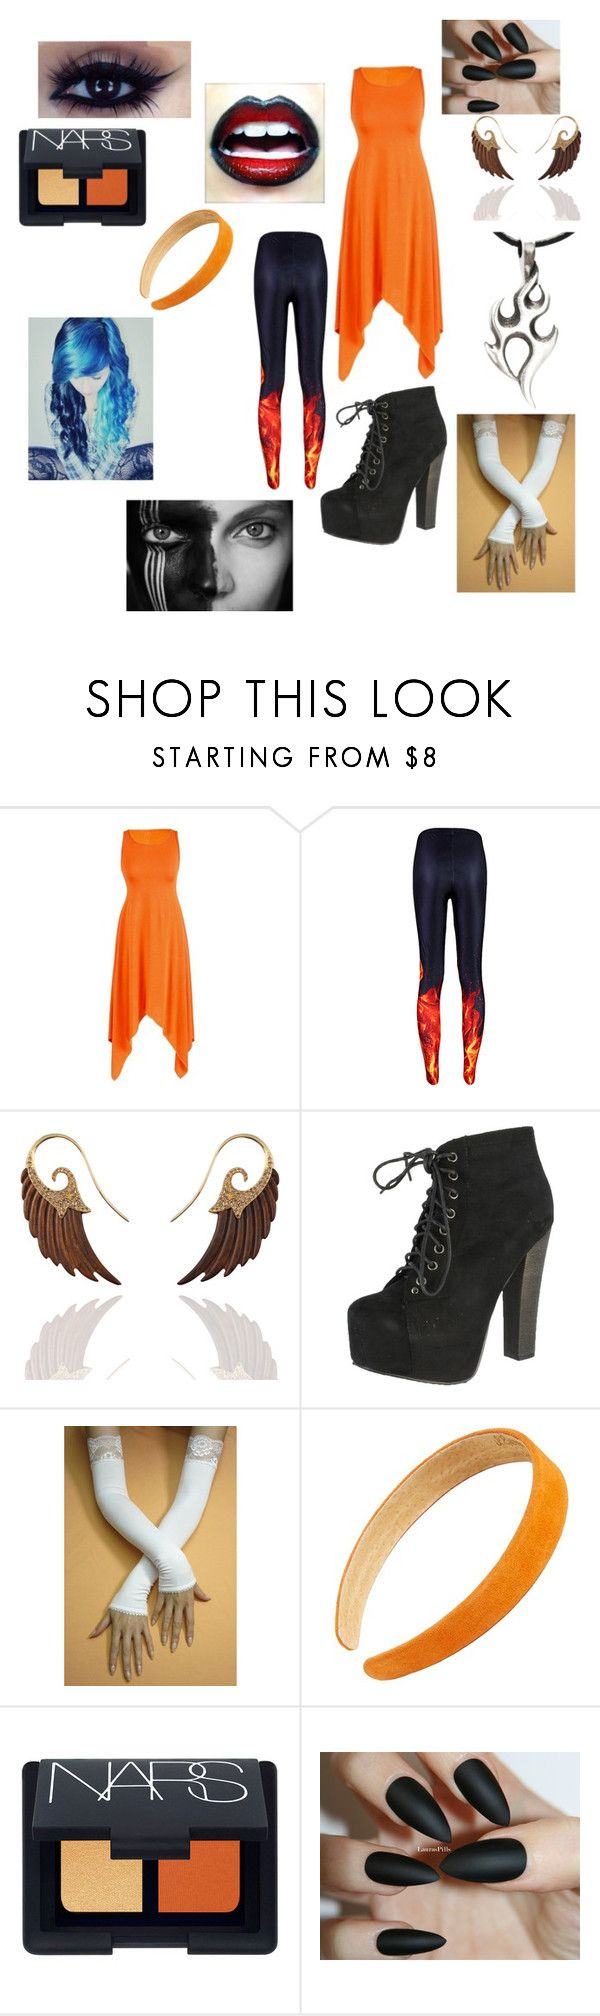 """""""The Phoenix"""" by ruescgj ❤ liked on Polyvore featuring Noor Fares, Breckelle's, Shirò, L. Erickson, NARS Cosmetics and vintage"""